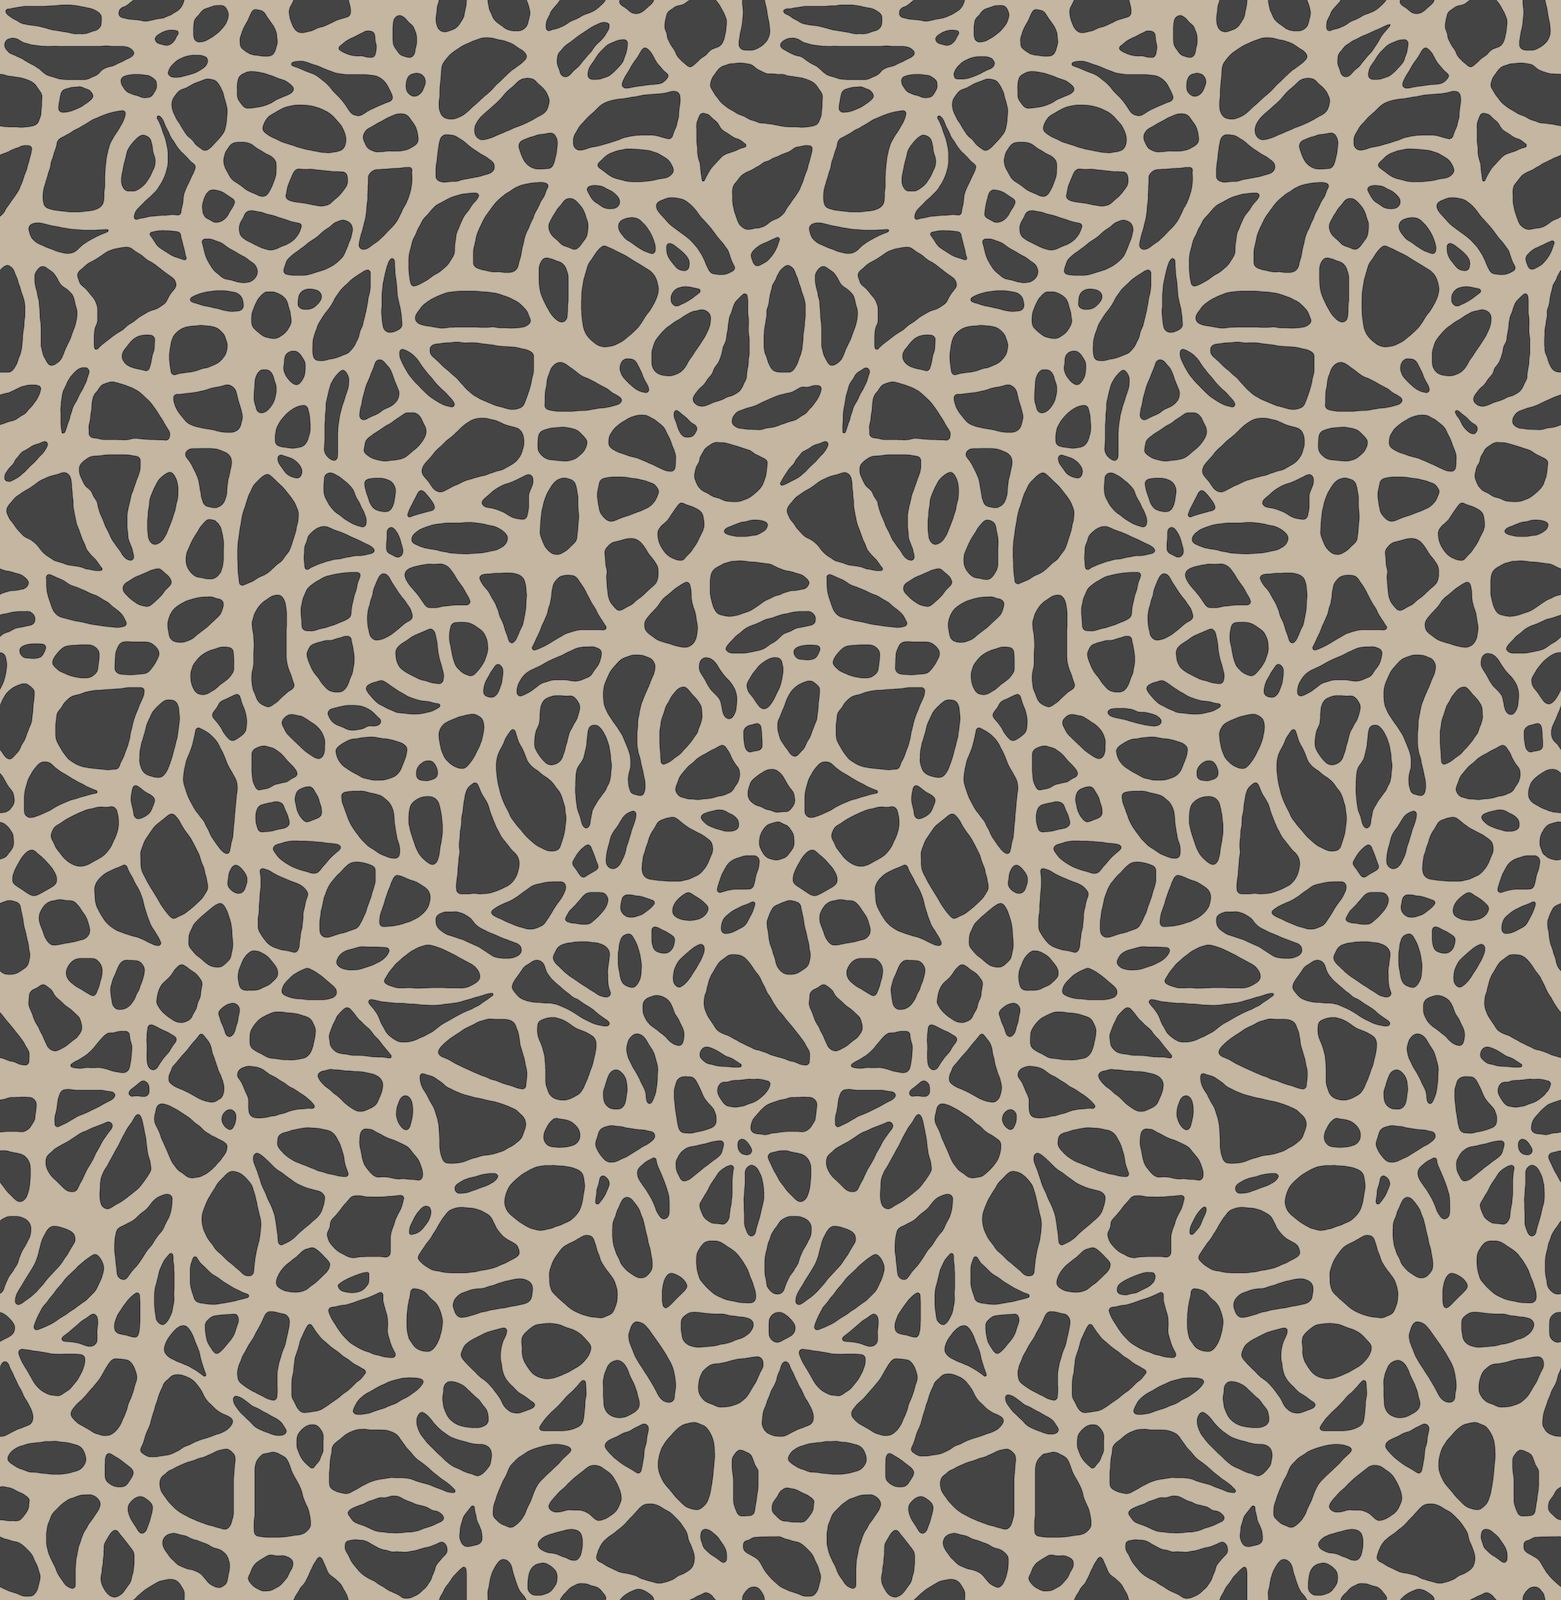 Tapetti 1838 Wallcoverings Pebble flock ruskea 0,52x10,05 m